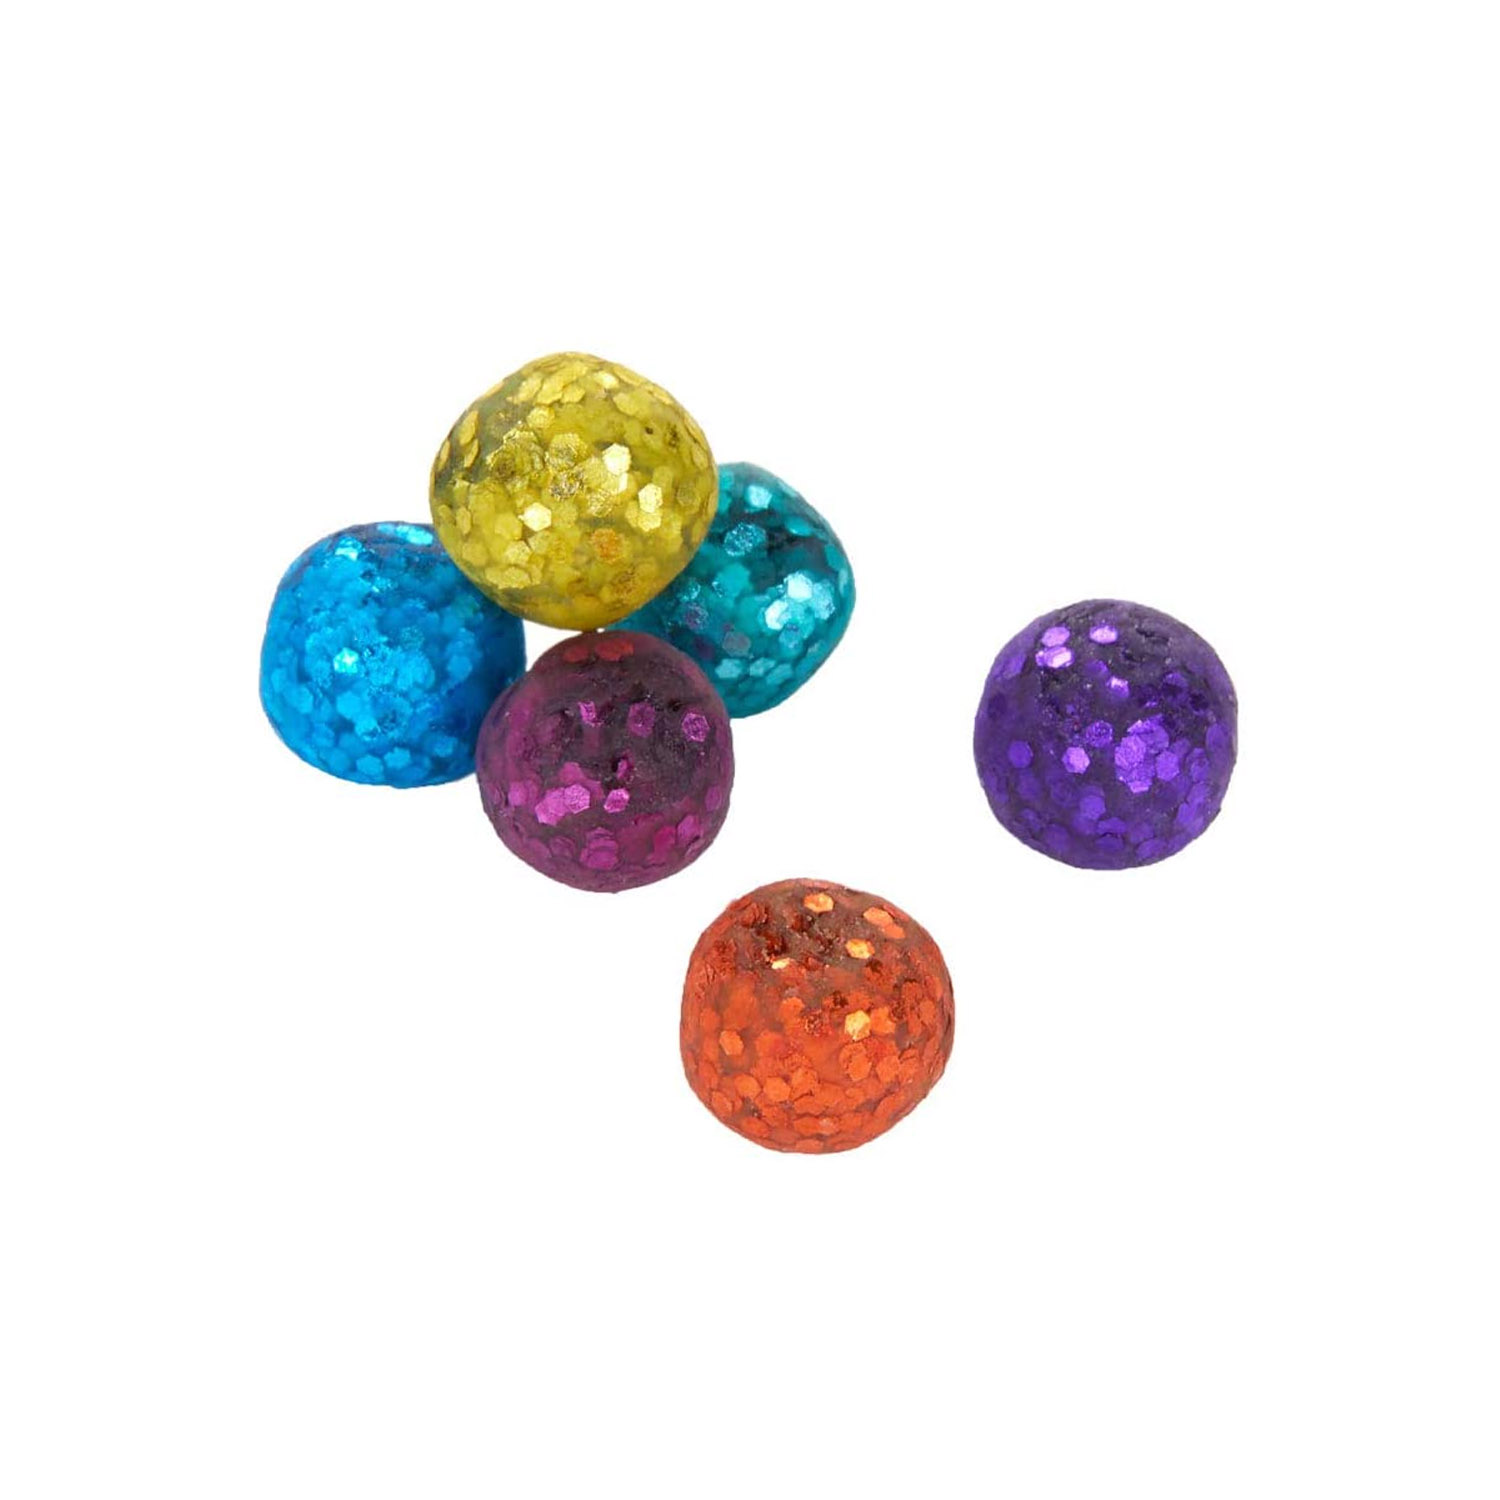 Crayola-Kids-Mouldable-Glitter-Dots-Assortments-OR-Sparkle-Station-Creative-Art thumbnail 8